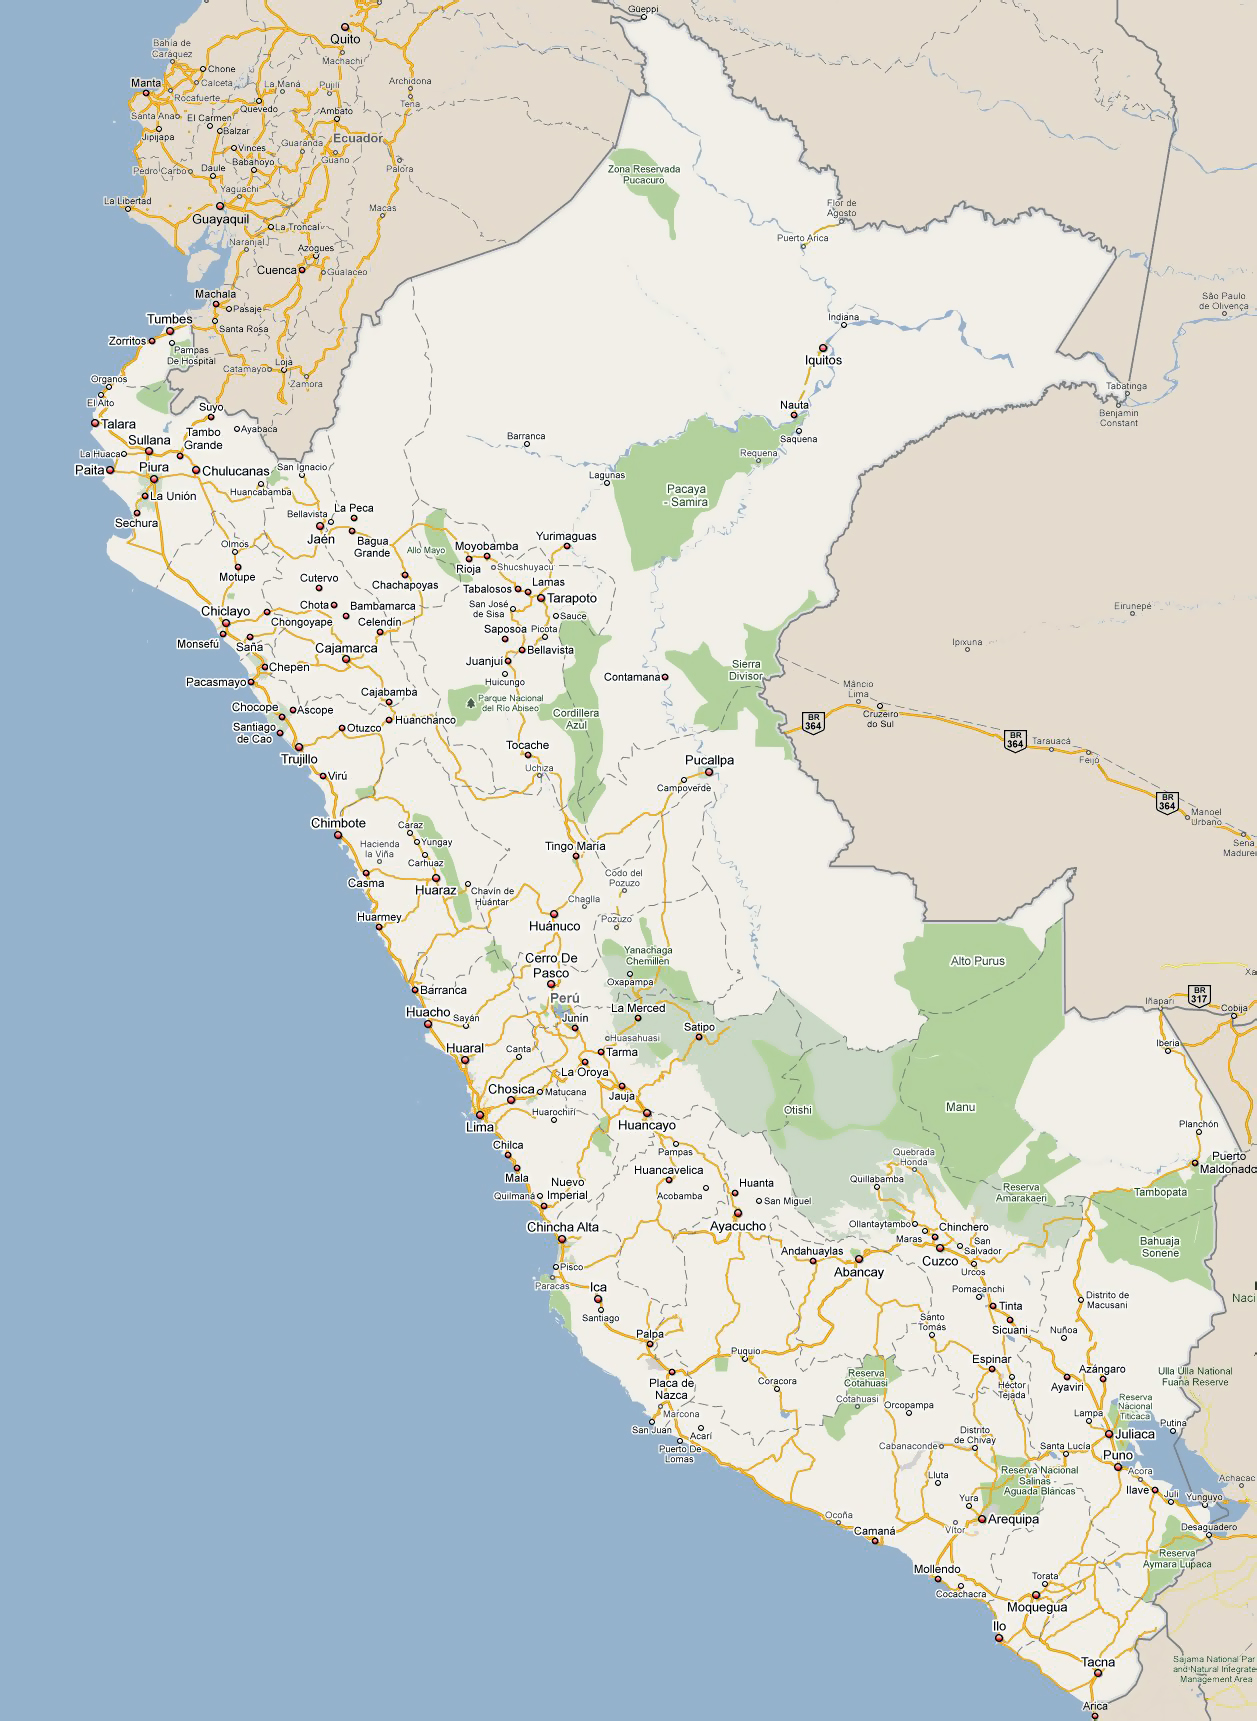 Large detailed road map of Peru with all cities | Peru ... on road map biology, features south america, destination south america, road map scandinavia, library south america, camping south america, driving in columbia south america, road map brazil, road map buenos aires, hotels south america, water south america, trip south america, road map anguilla, road map zimbabwe, tourist south america, landlocked country south america, lake nicaragua map central america, road map martinique, blog south america, road map suriname,